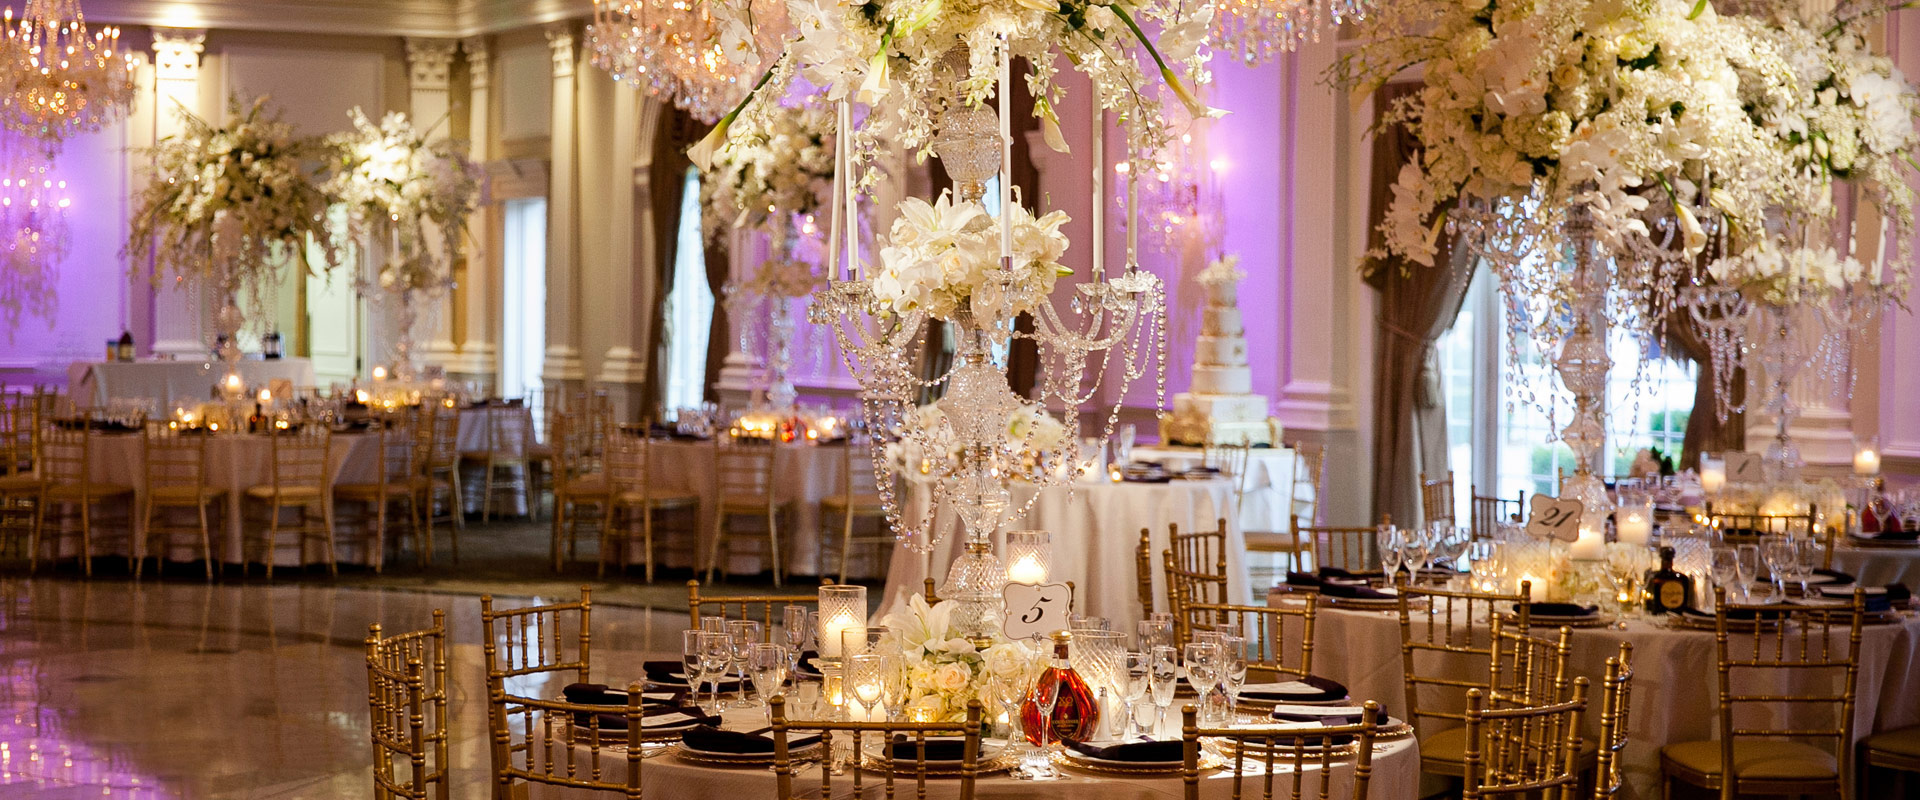 Our suggested NJ wedding professionals make our ballrooms come alive